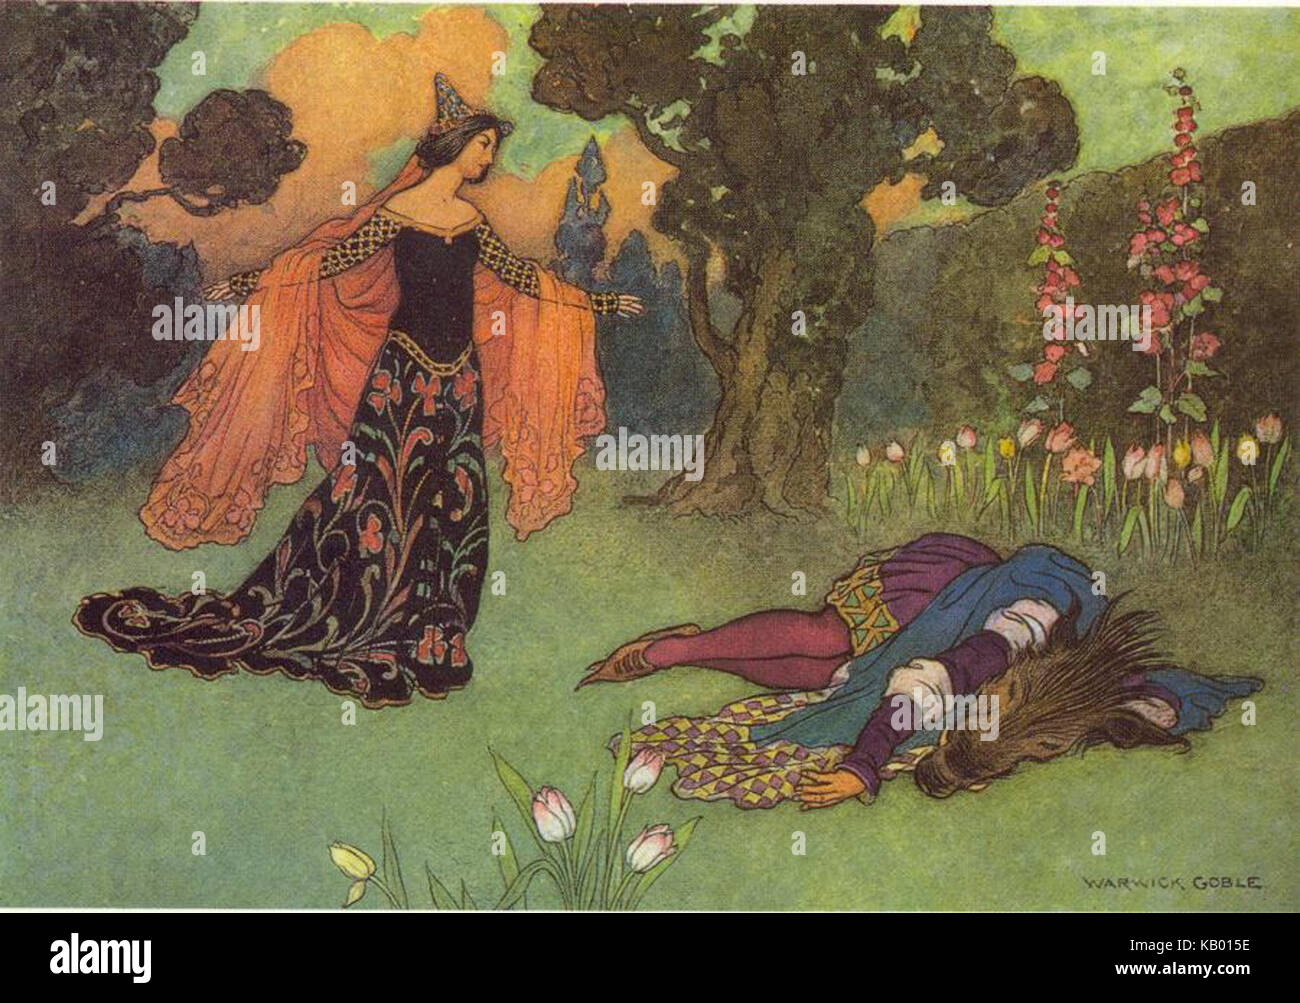 Warwick Goble Beauty and Beast - Stock Image